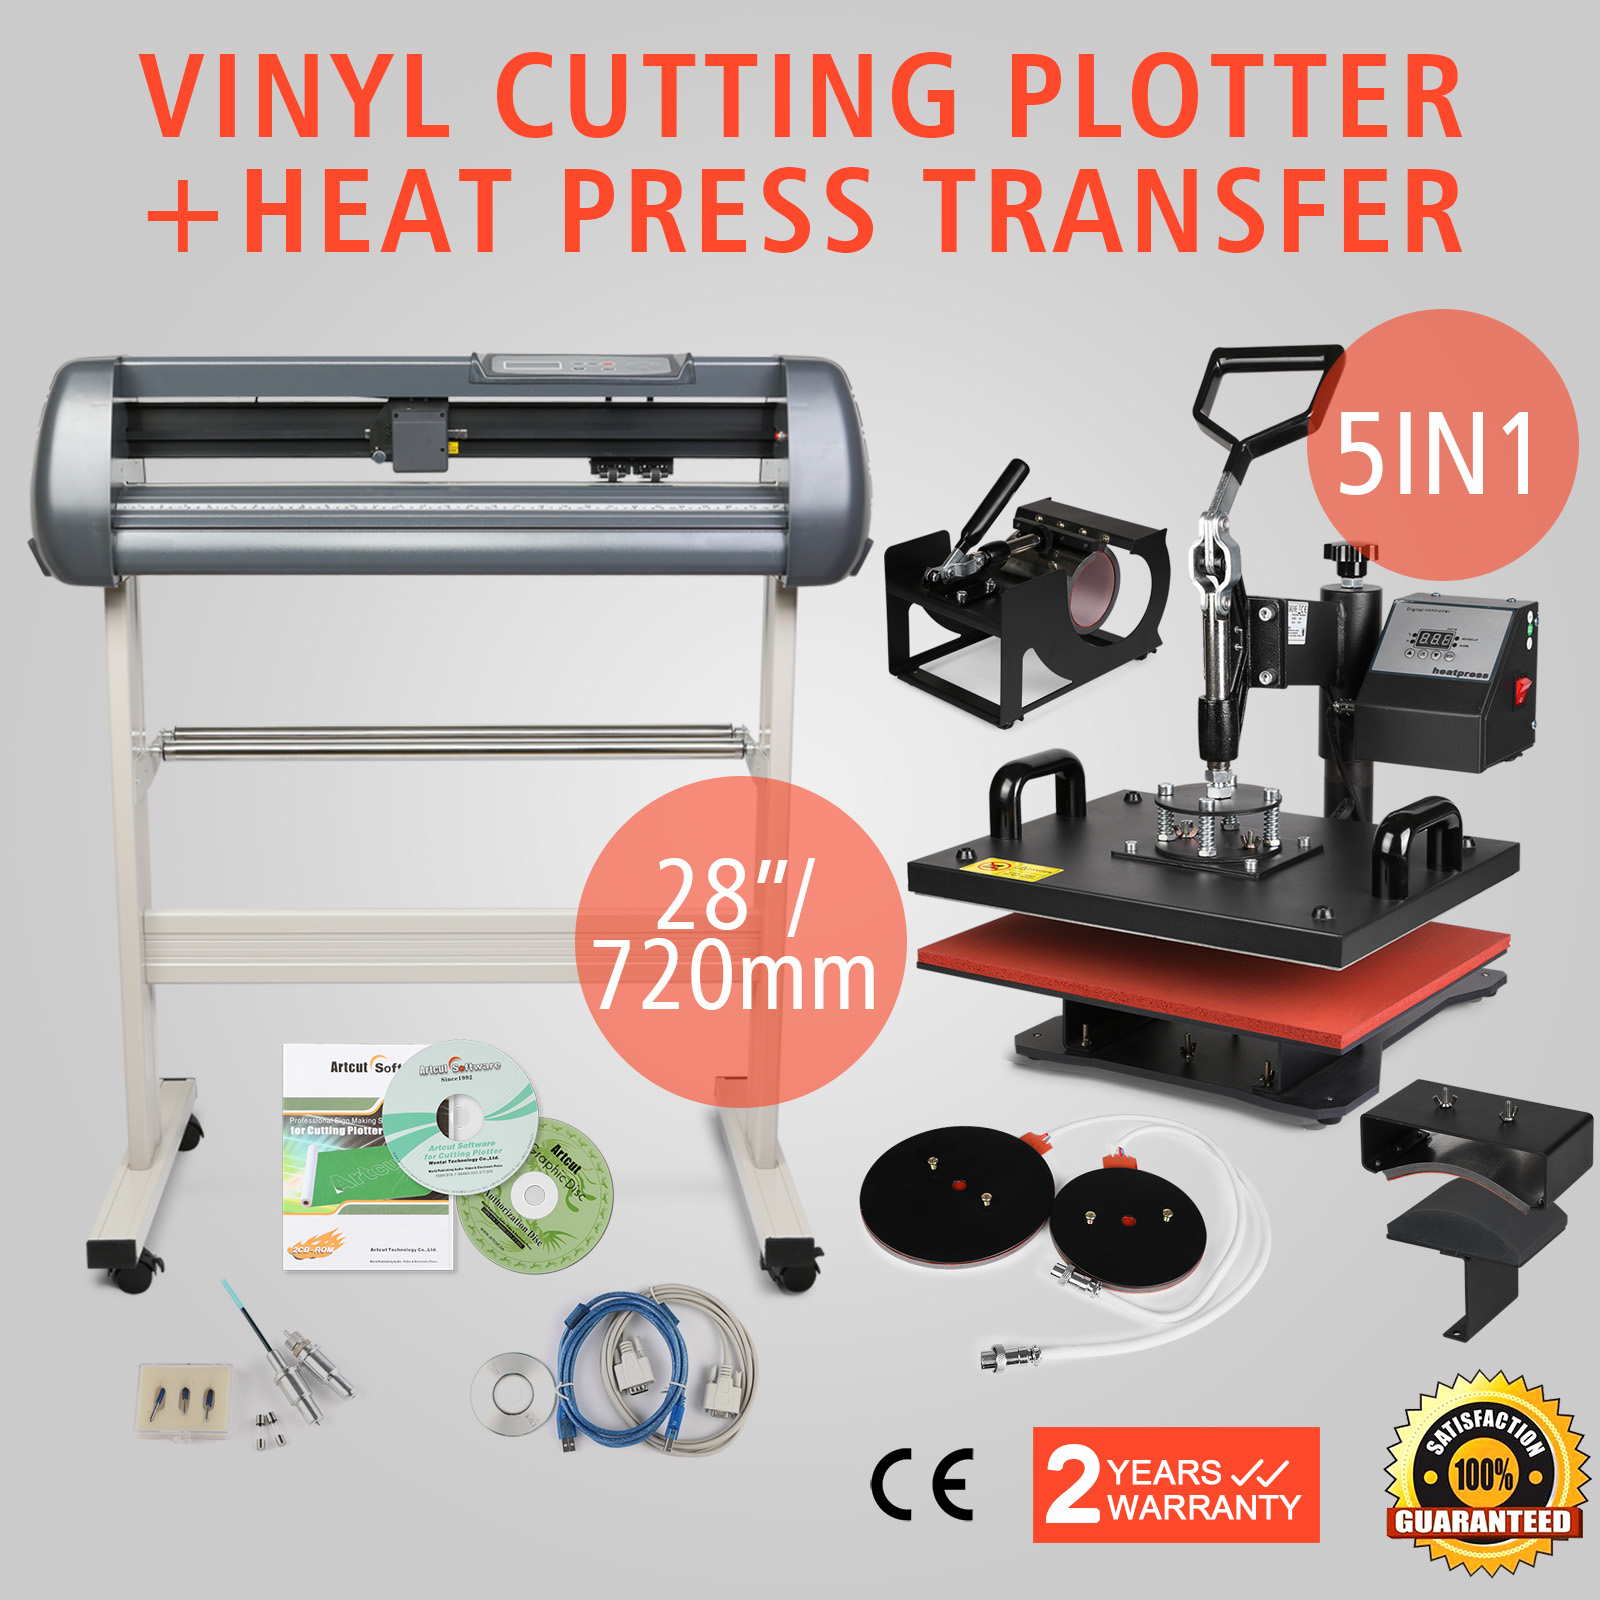 5in1 heat press transfer kit 28 vinyl cutting plotter cutter diy 3 blades auctions buy and. Black Bedroom Furniture Sets. Home Design Ideas